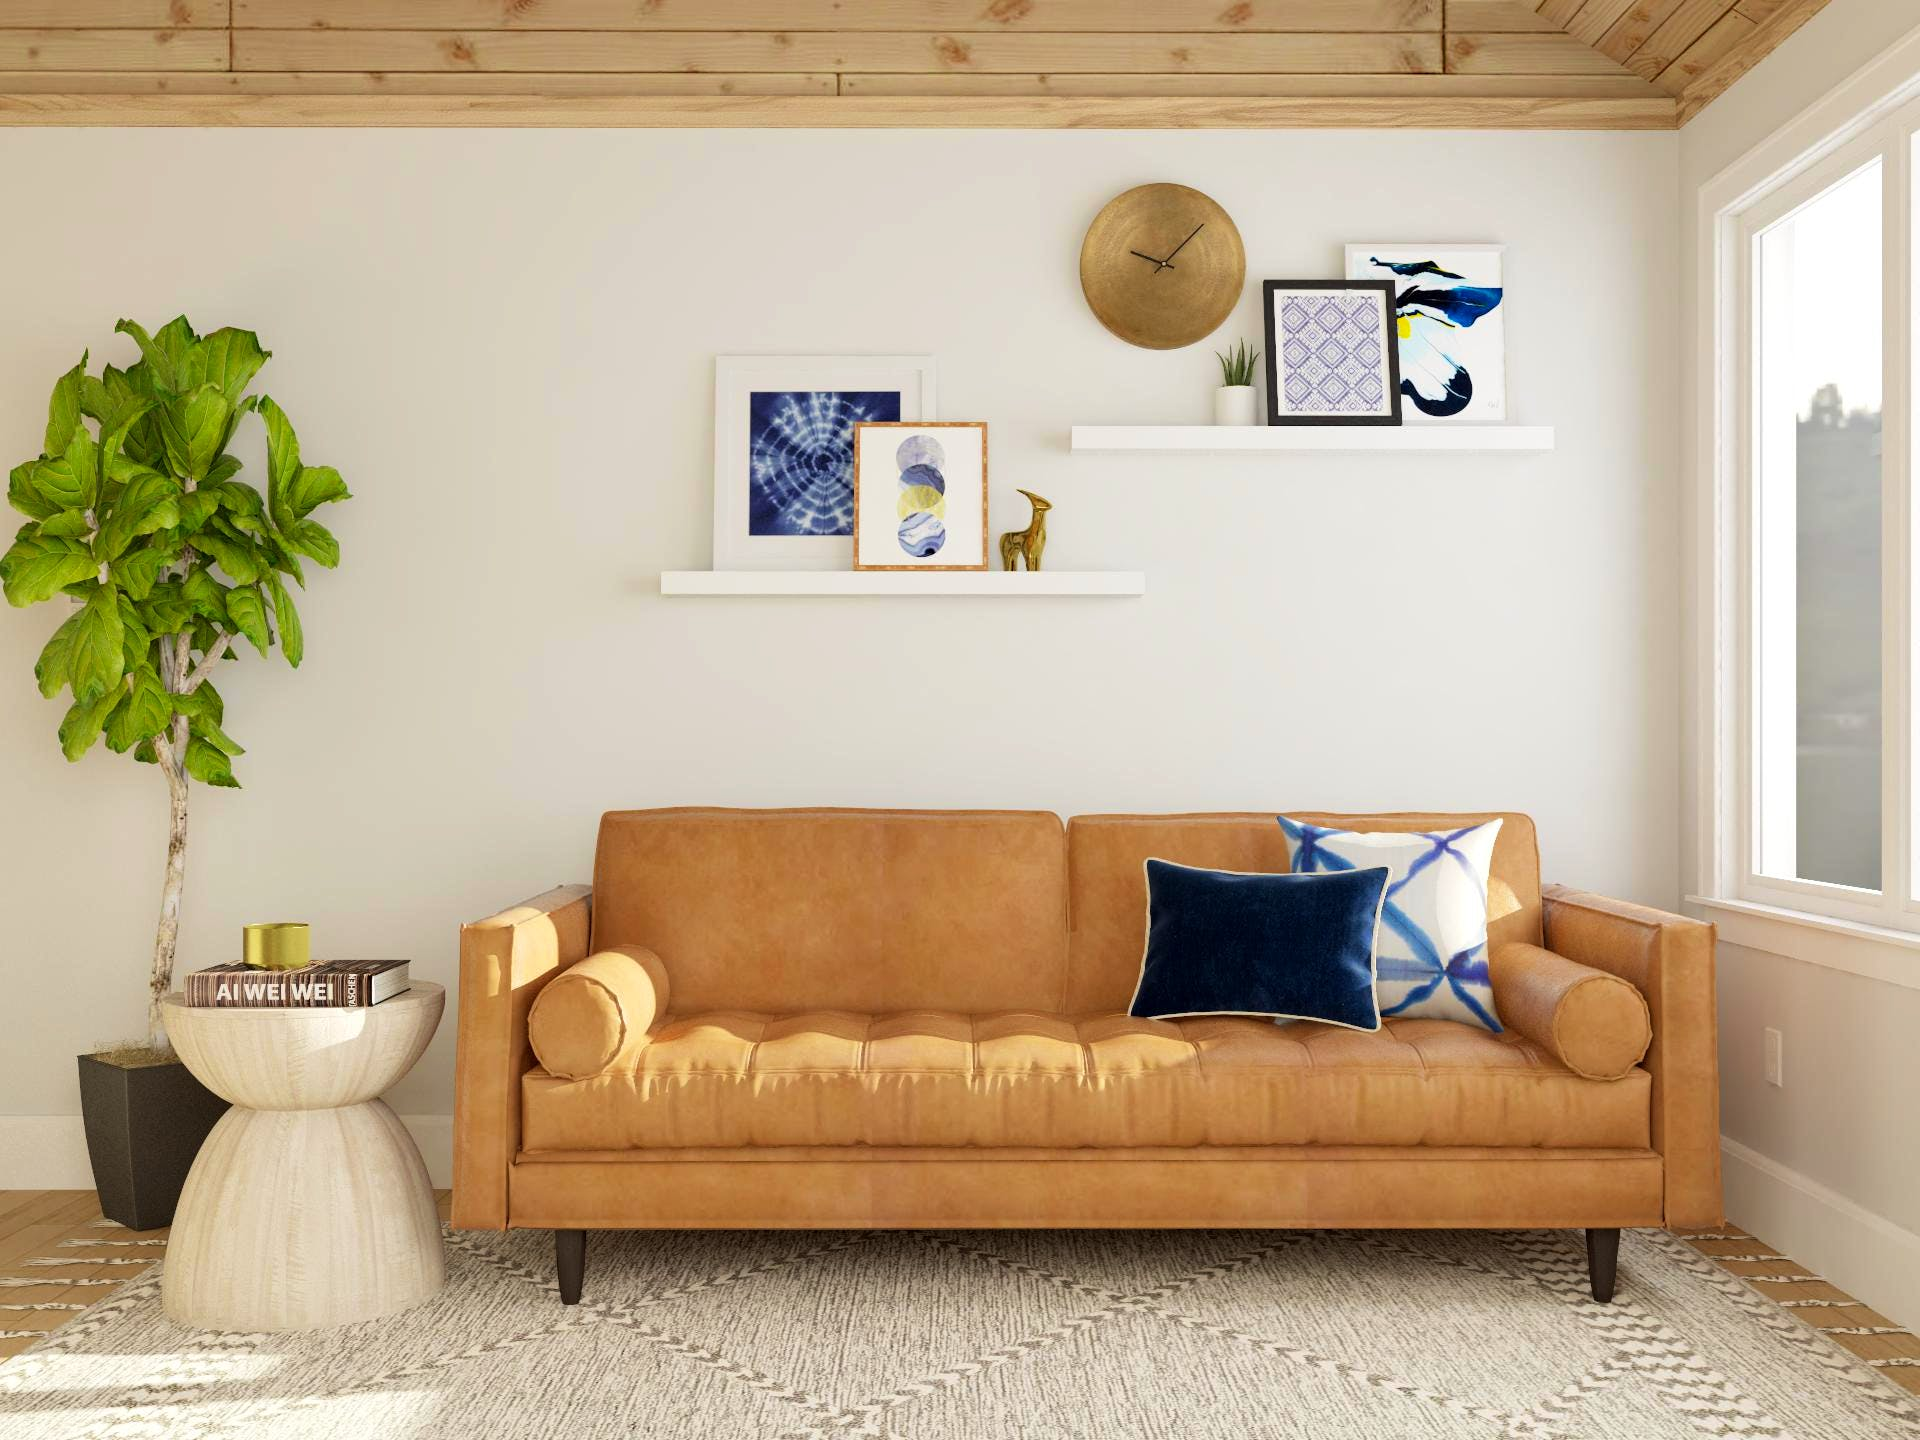 Mid-Century Modern Sofa in Camel With Decorative Hanging Shelves